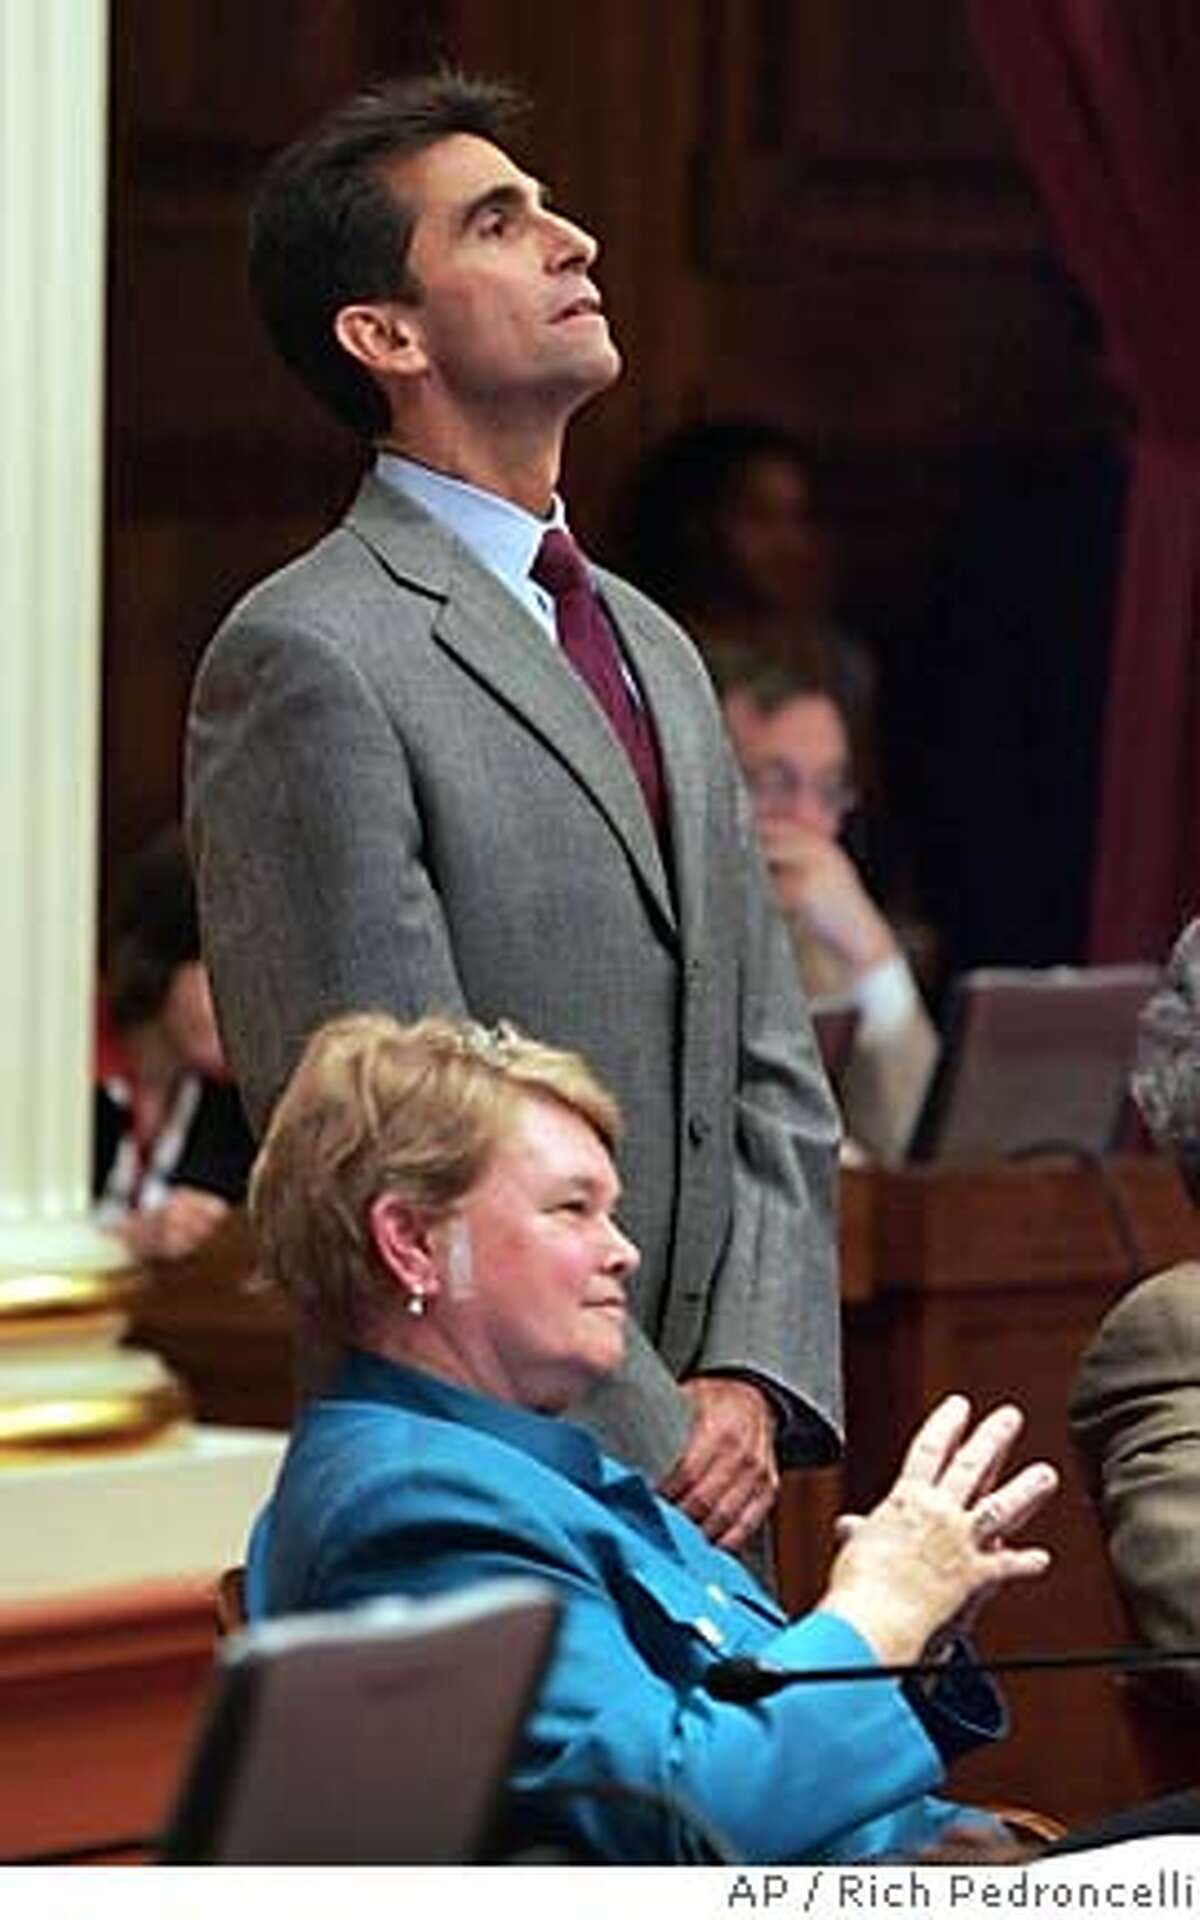 Assemblyman Mark Leno, D--San Francisco, standing, and state Sen. Sheila Kuehl, D-Santa Monica, two of the six gay members of the state Legislature, watch as the votes are counted on for Leno's same-sex marriage bill during the Senate session held at the Capitol in Sacramento, Calif., Thursday, Sept. 1, 2005. By a 21-15 vote, the Senate became the first legislative chamber in the country to approve a bill. The bill will be sent to the Assembly which narrowly rejected a bill in June.(AP Photo/Rich Pedroncelli)